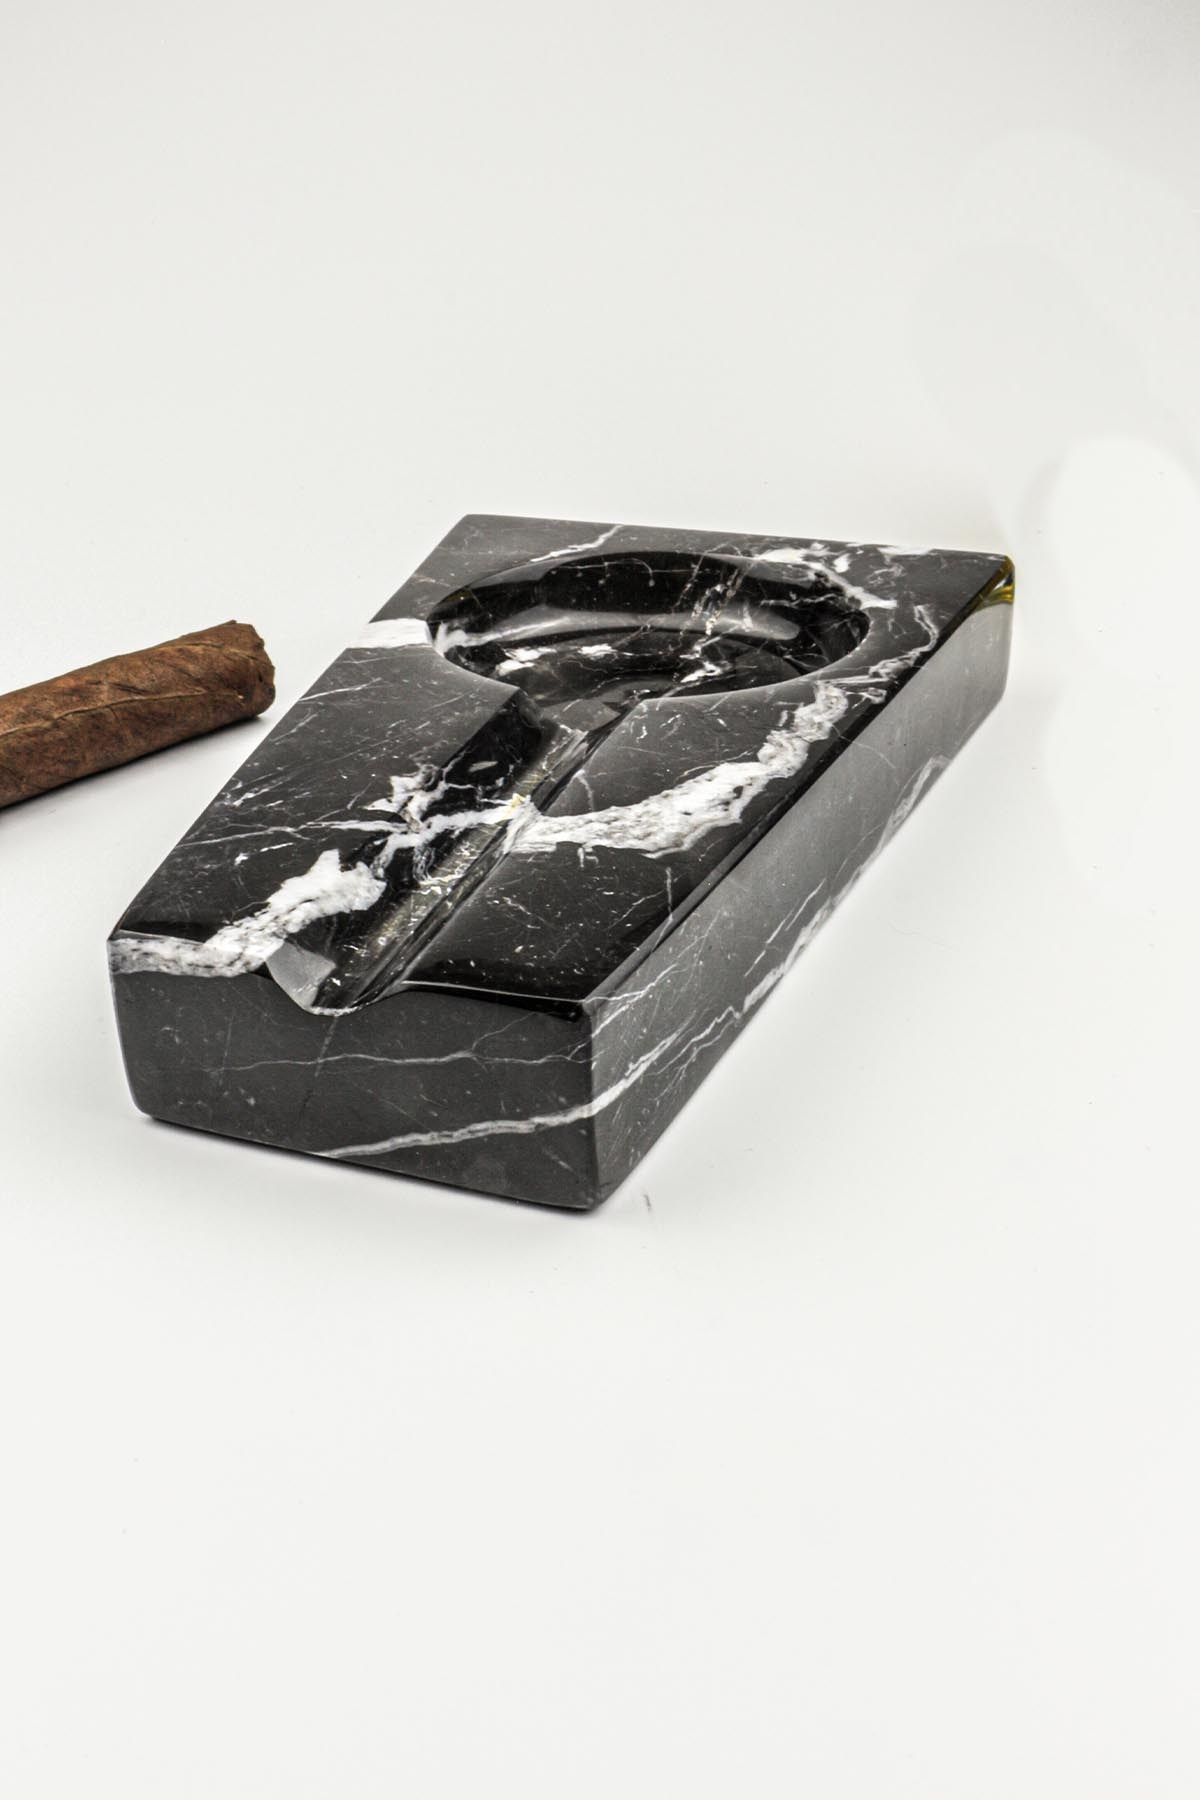 Black Natural Marble Smoking Accessories Ashtray Bulk Cool European Decor Gifts Boyfriend Cigar Cigarette Weed Decorative Trays enlarge